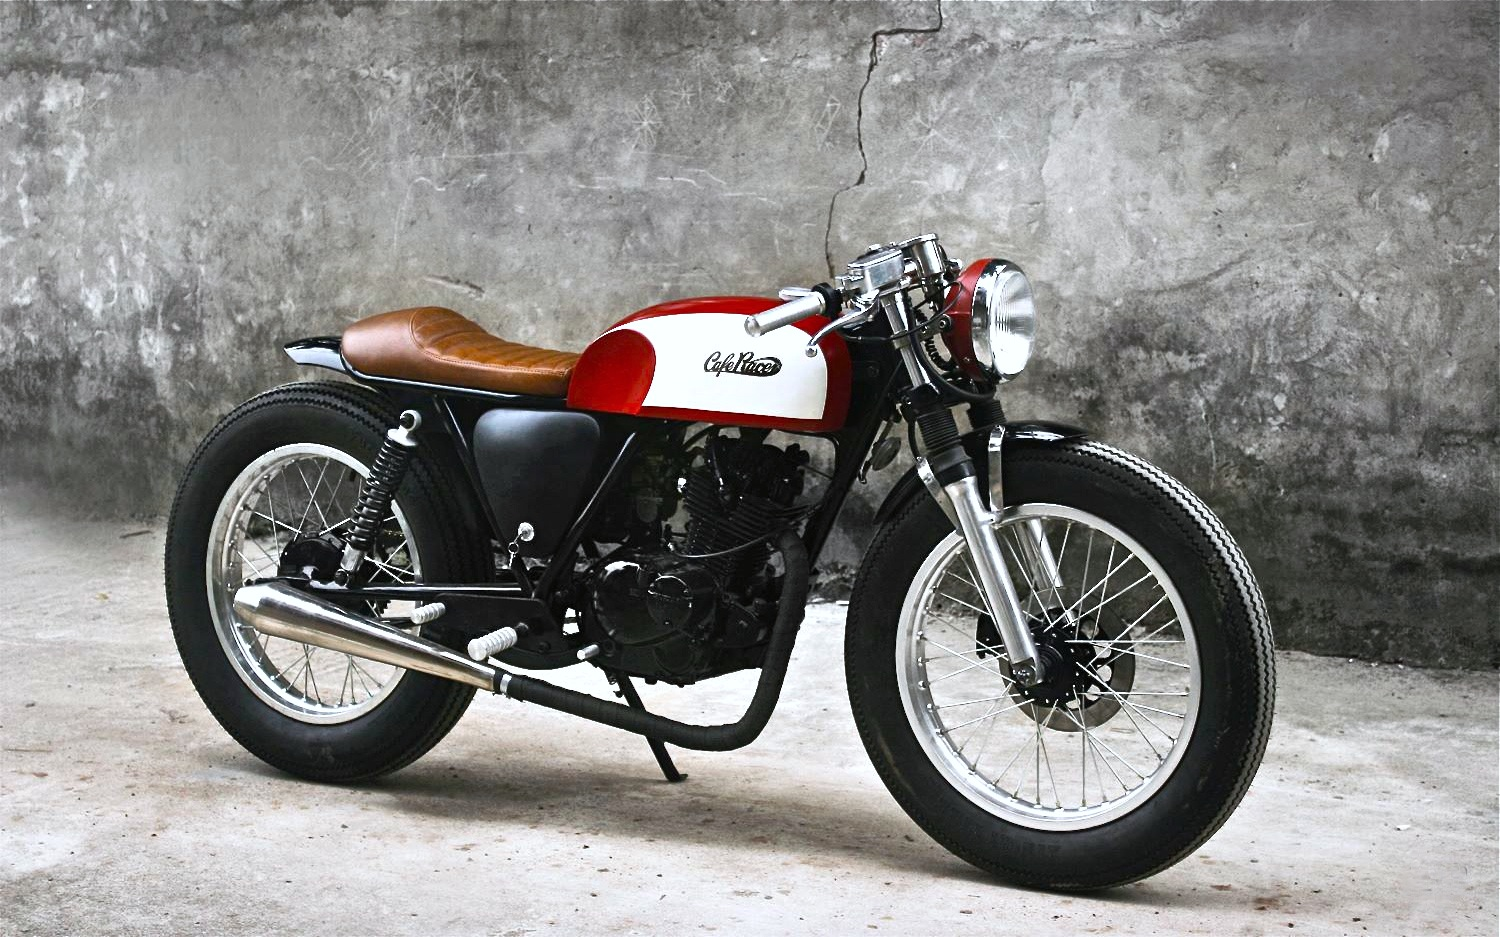 A customized Suzuki gn125 with a cafe-racer look